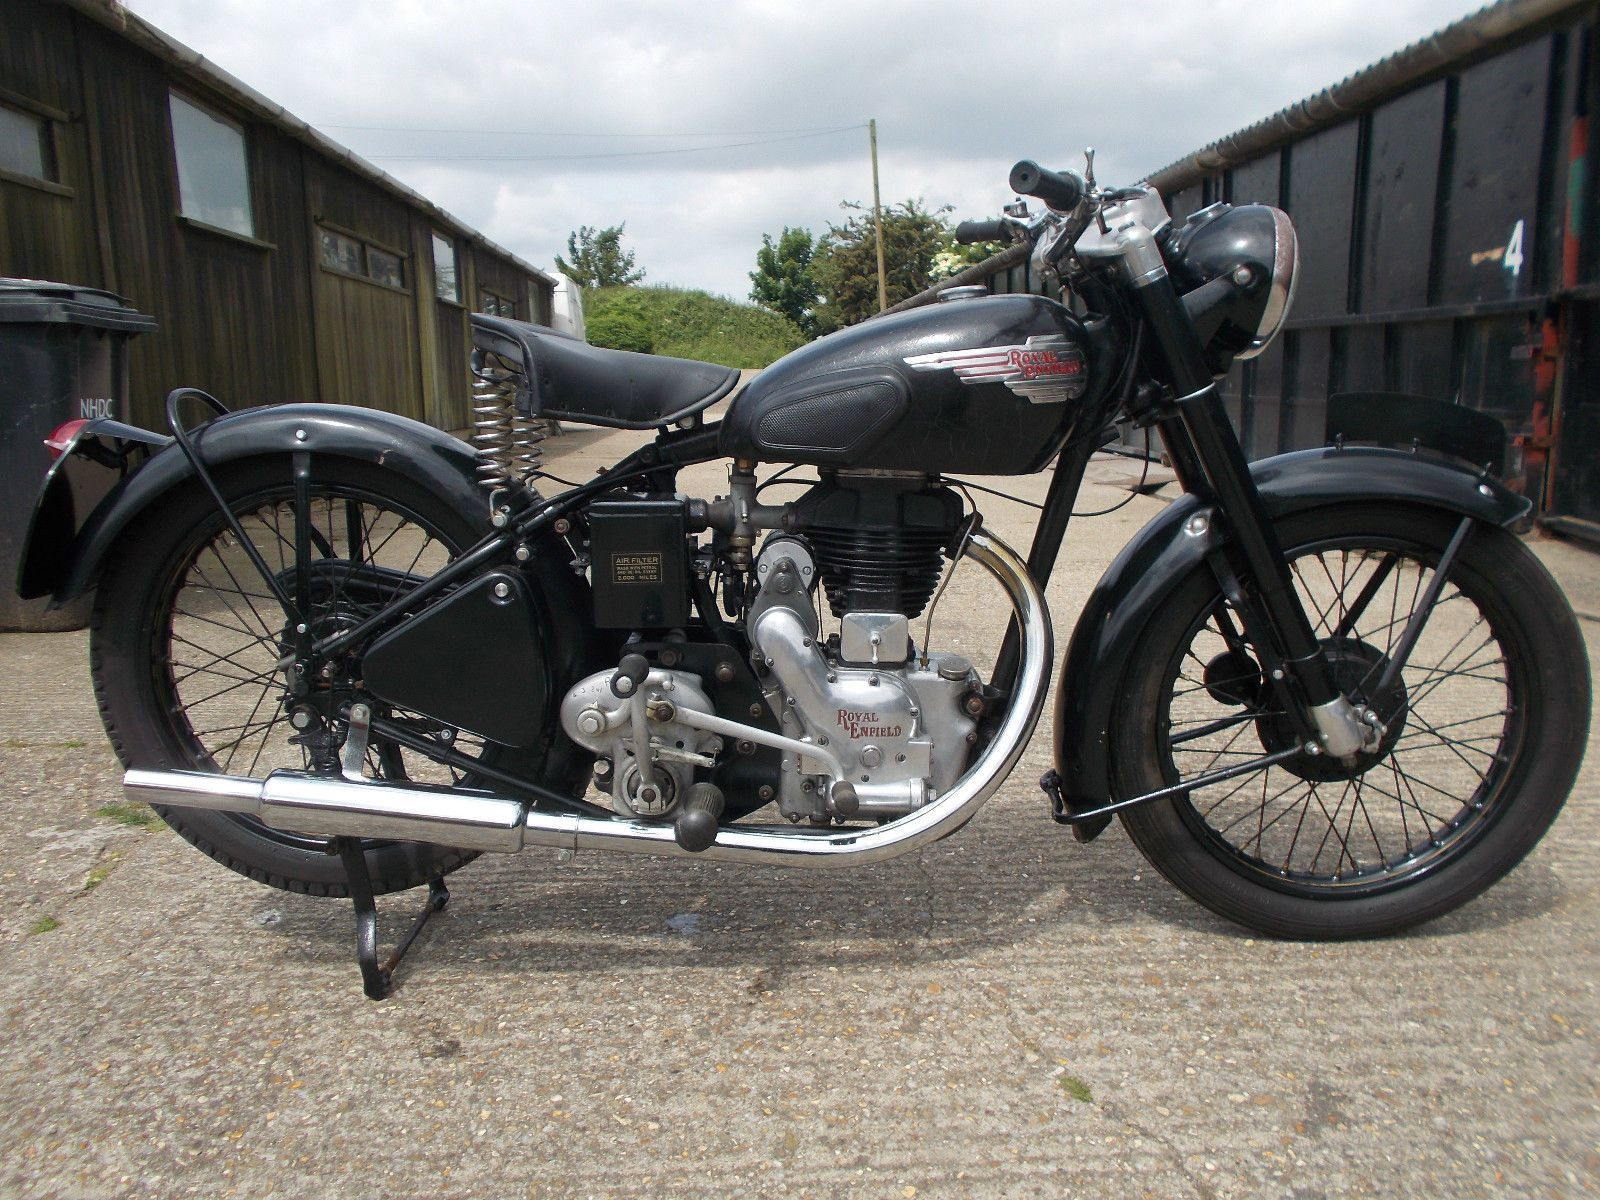 Matchless g 11 csr for sale 1958 on car and classic uk c544589 - 1952 Royal Enfield Model G 350 British Motorcyclescars